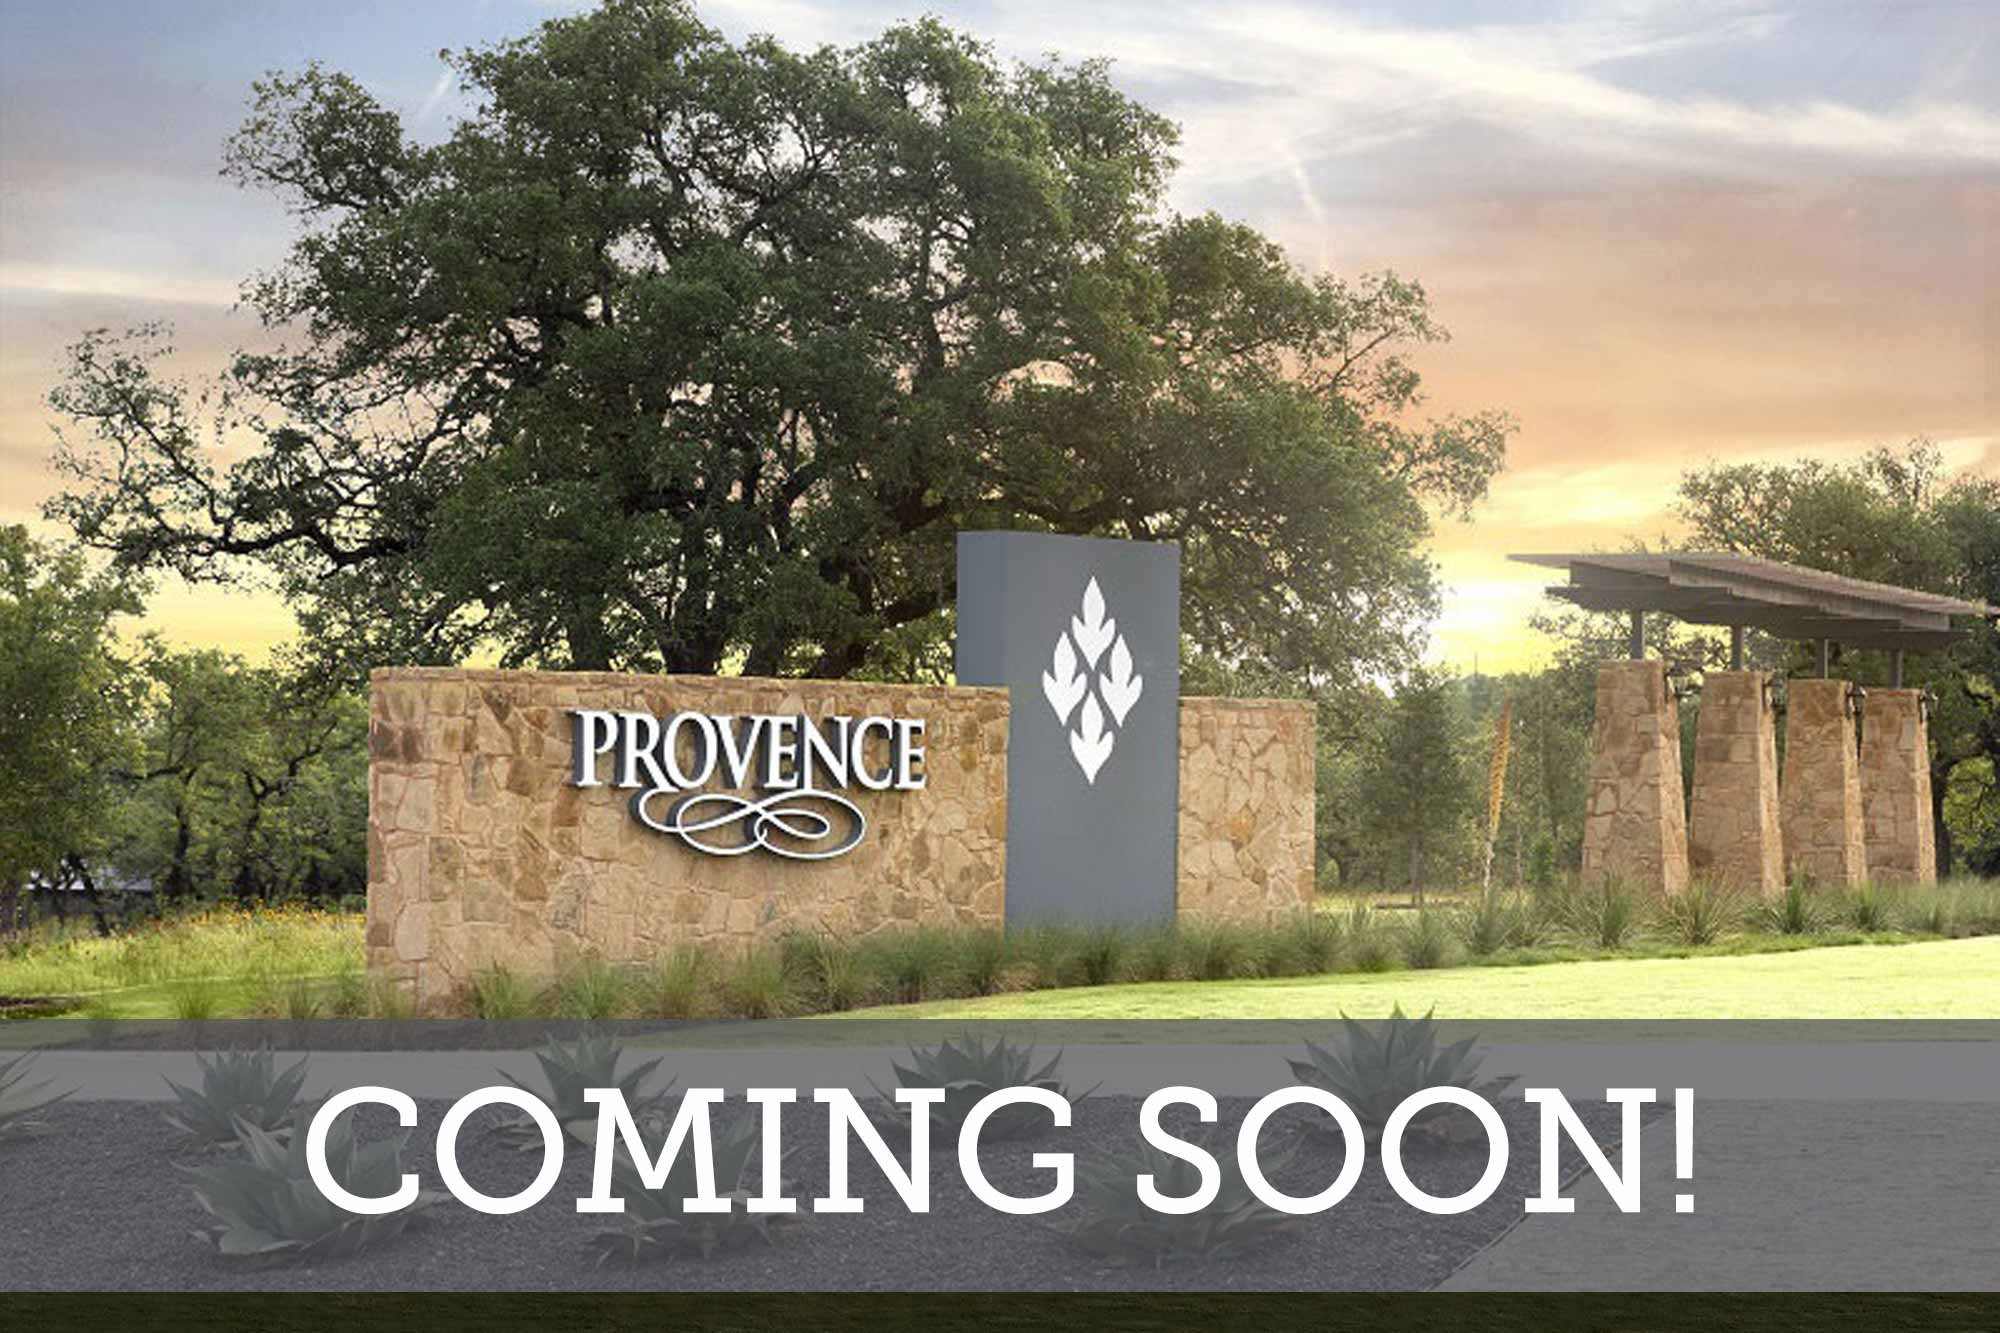 Provence 60' - Coming Soon